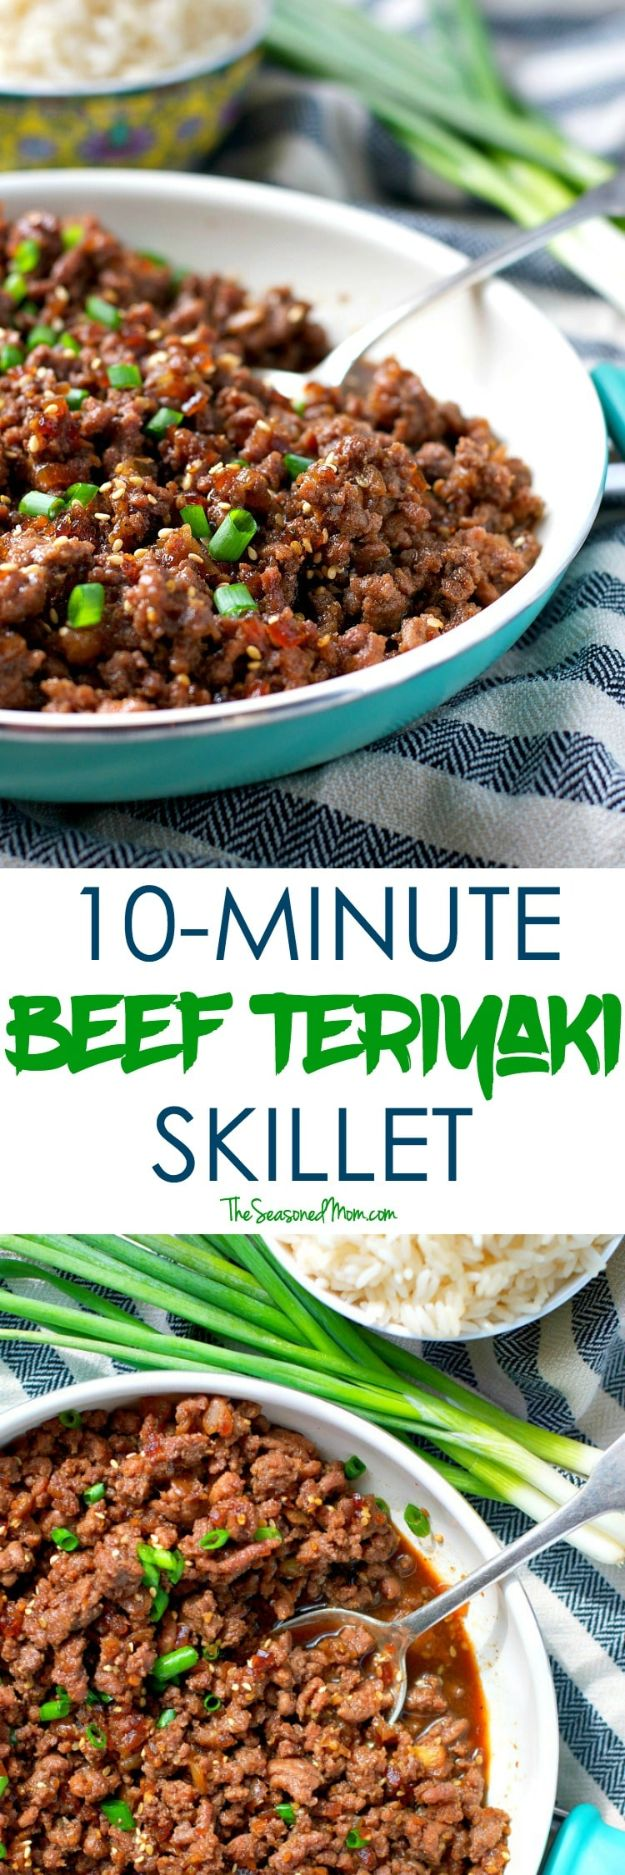 Best Recipes With Ground Beef - 10-Minute Beef Teriyaki Skillet - Easy Dinners and Ground Beef Recipe Ideas - Quick Lunch Salads, Casseroles, Tacos, One Skillet Meals - Healthy Crockpot Foods With Hamburger Meat - Mexican Casserole, Instant Pot Carne Molida, Low Carb and Keto Diet - Rice, Pasta, Potatoes and Crescent Rolls #groundbeef #beefrecipes #beedrecipe #dinnerideas #dinnerrecipes http://diyjoy.com/best-recipes-ground-beef